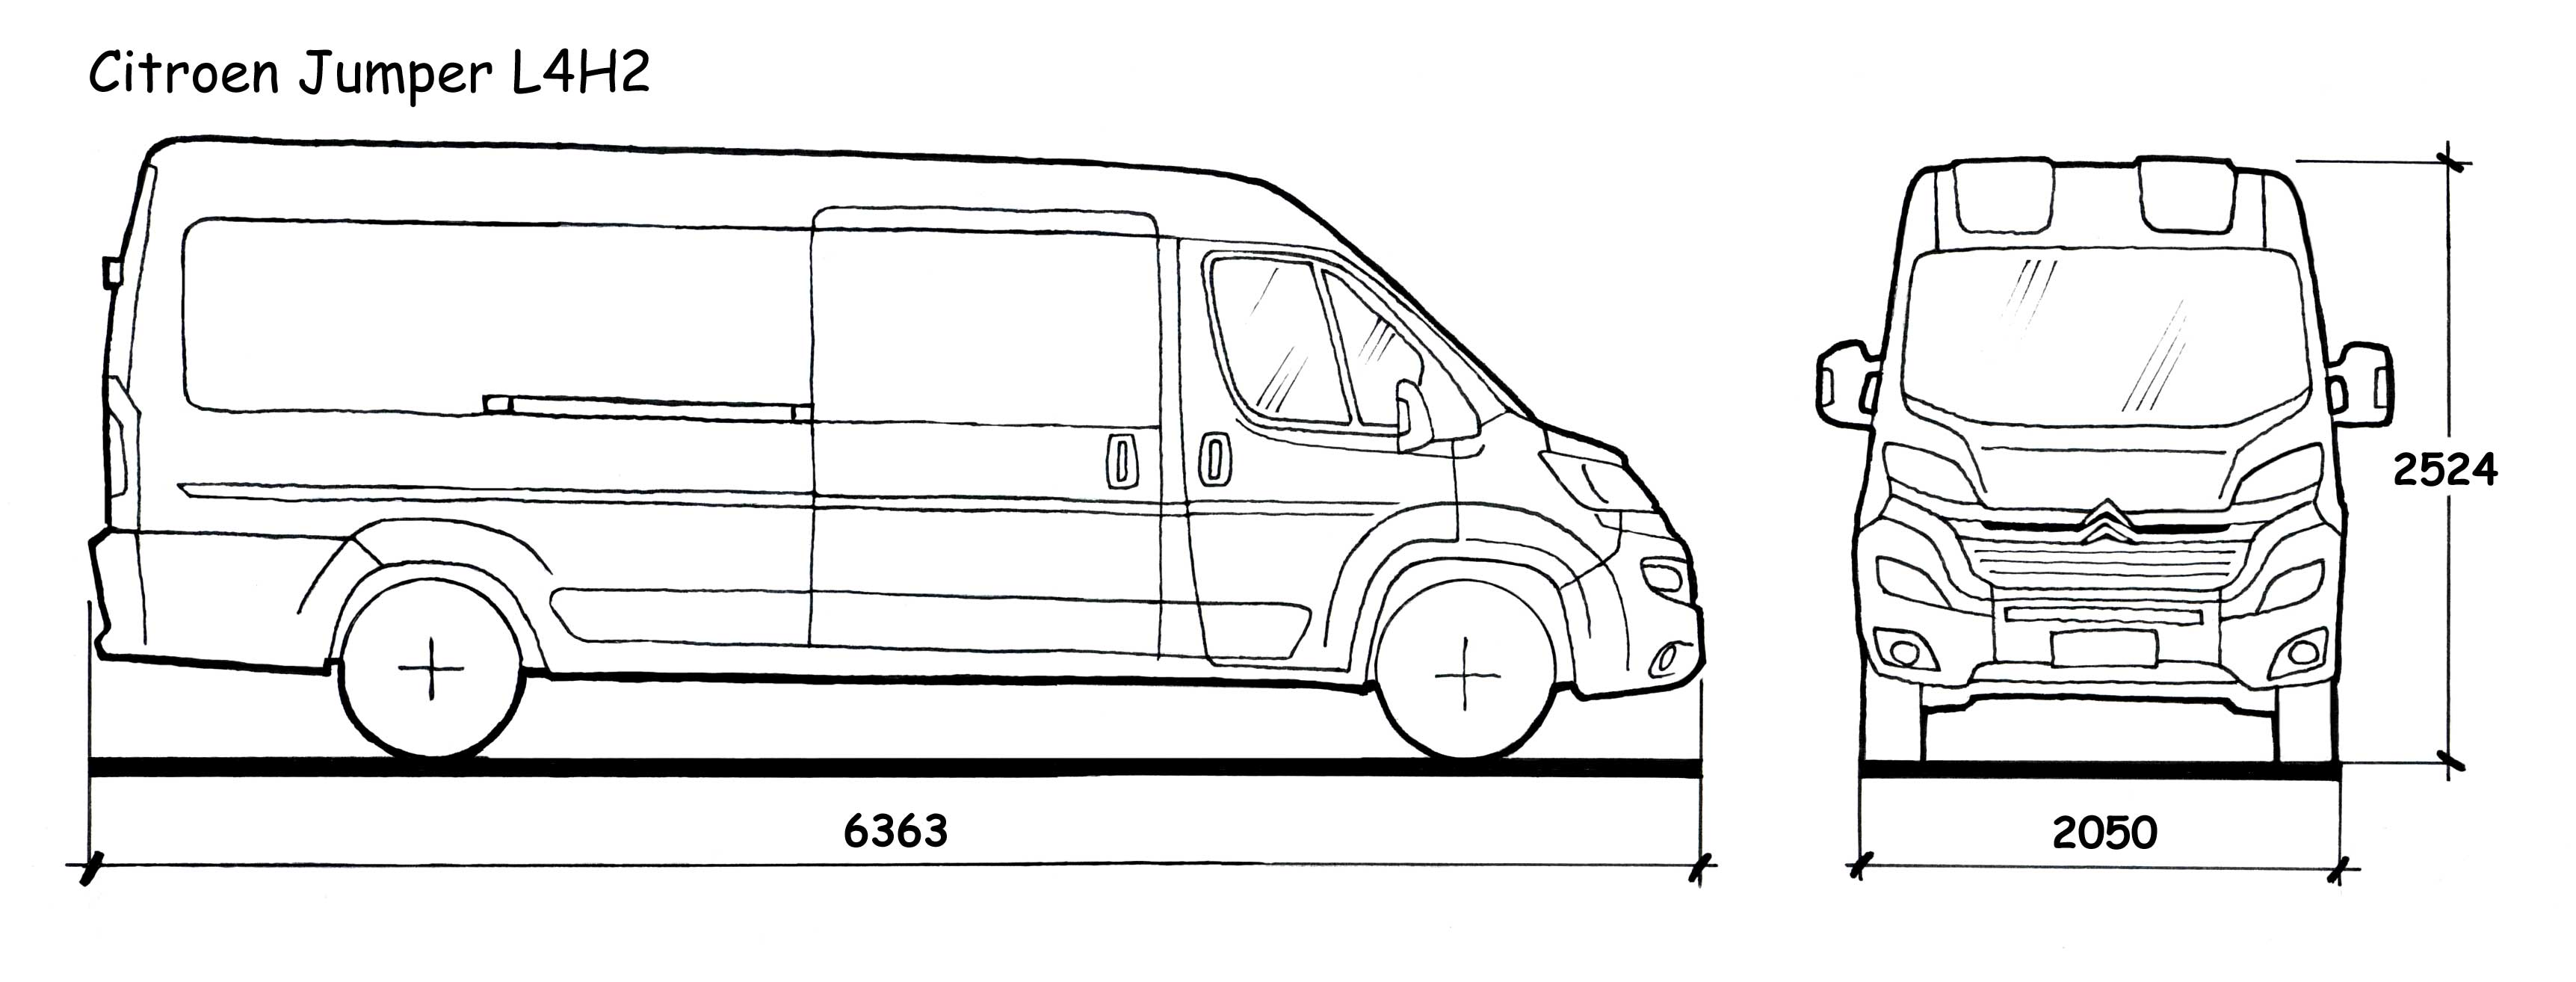 Peugeot Boxer Dimensions The Vector Drawing Peugeot Boxer